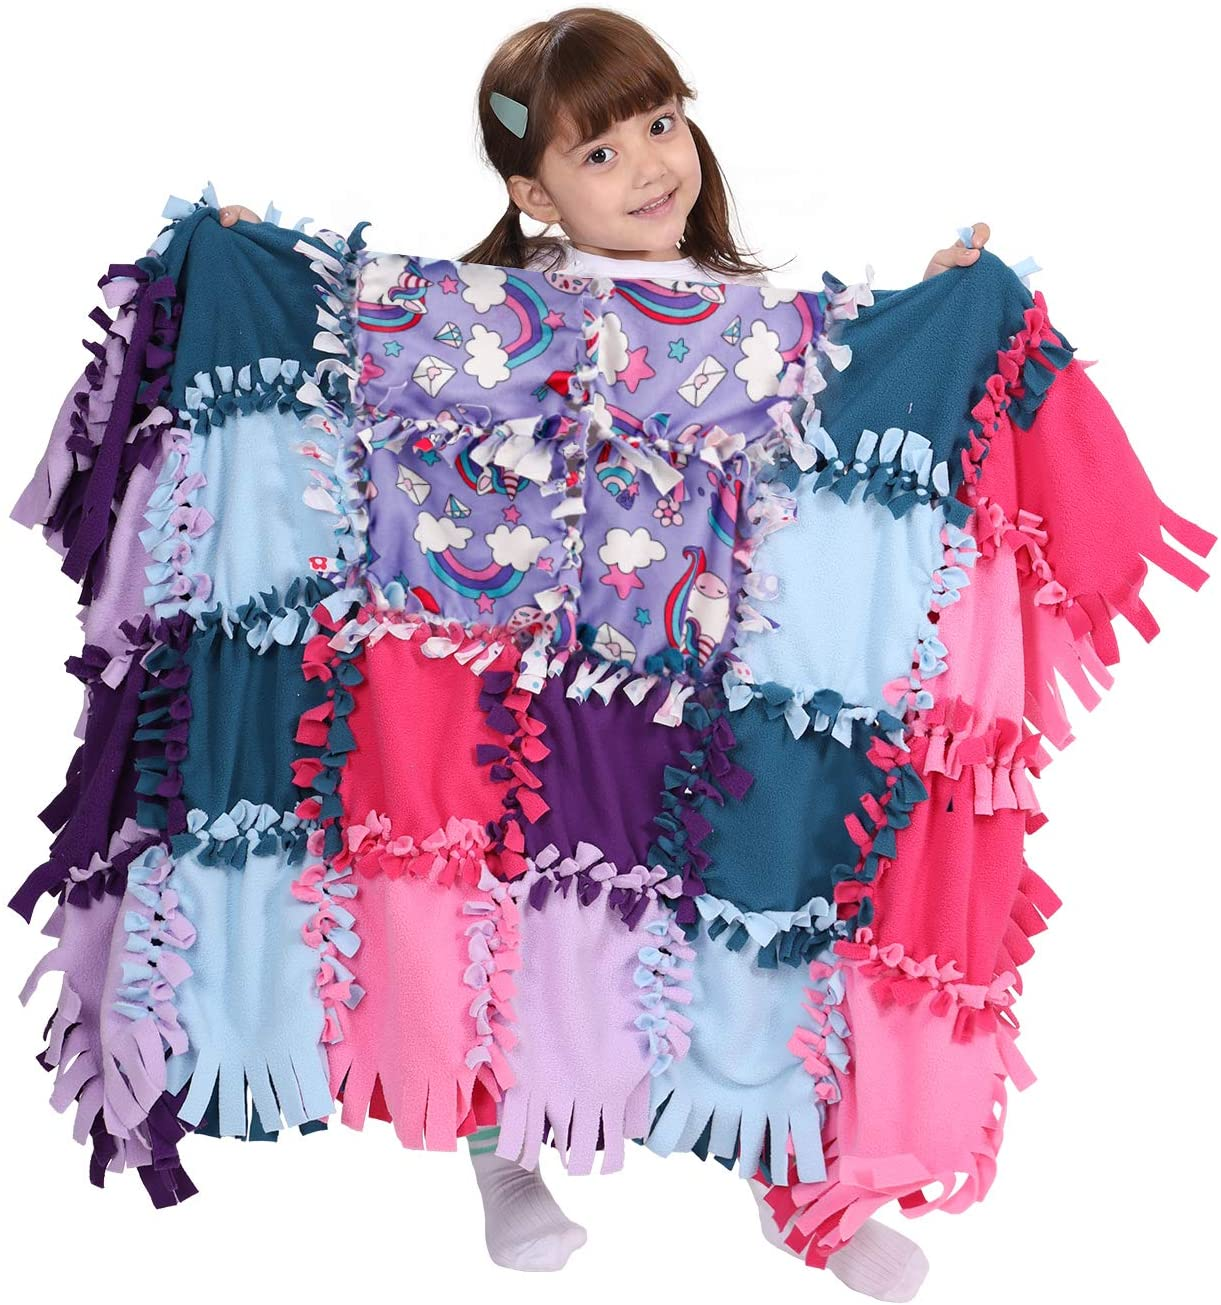 Girls Gift Blankets Crafts Kit, Unicorn Fleece Toys For Kids Age 7 8 9 10 11 12, Ideas Christmas Birthday DIY Art Presents, Learning Educational Game, No Sew Tie Blankets Fleece Throw Making Quilt Kit